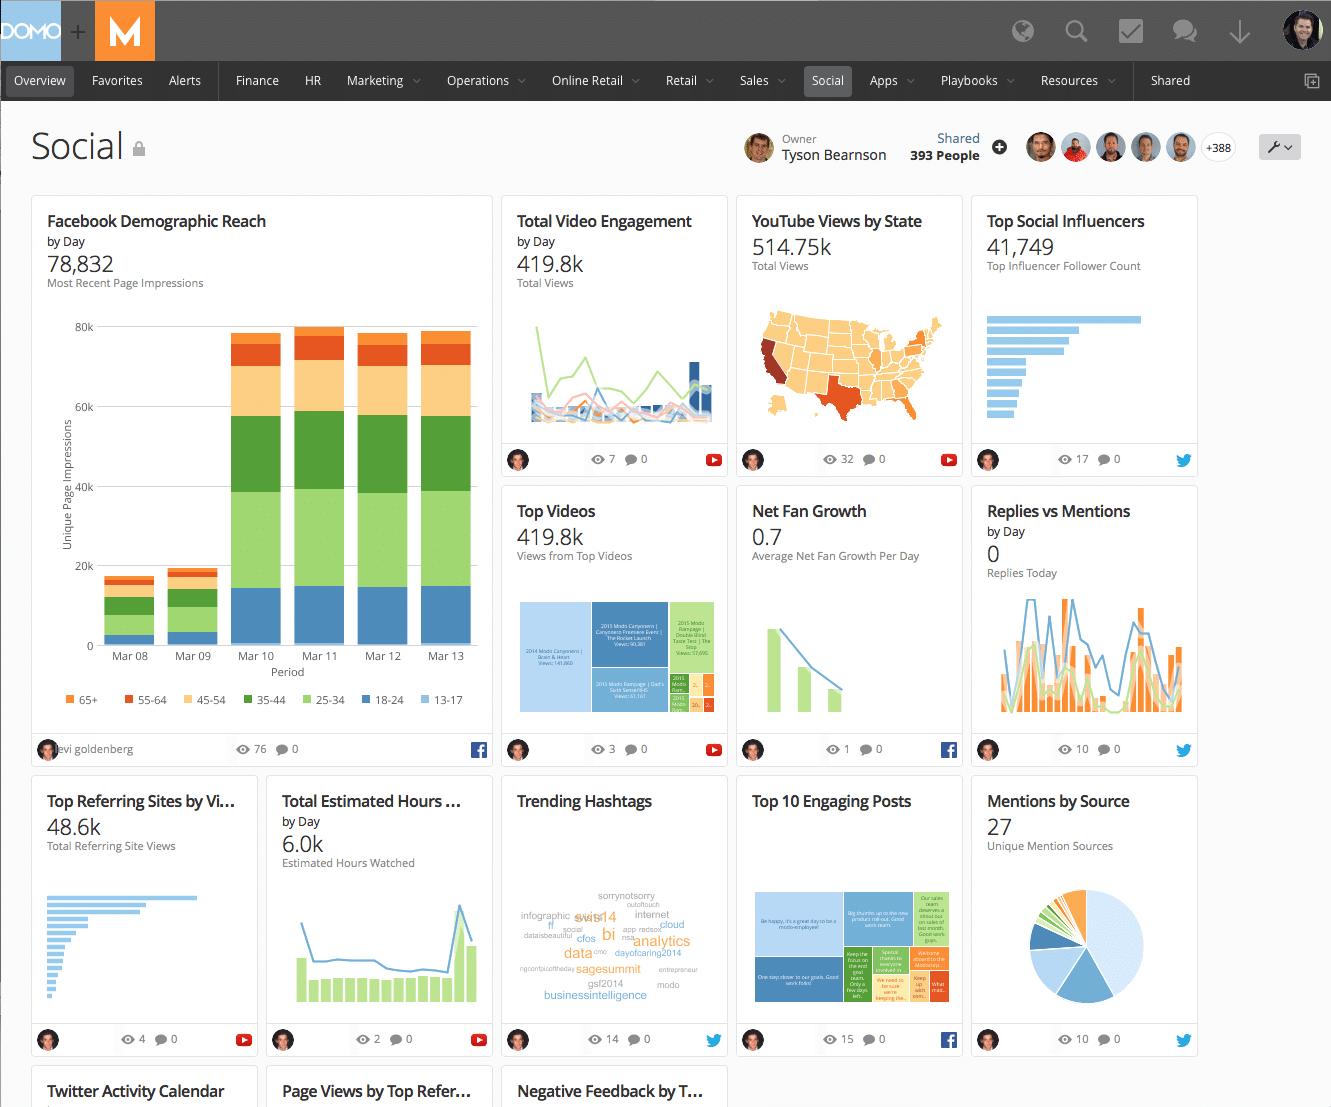 domo data visualization tools